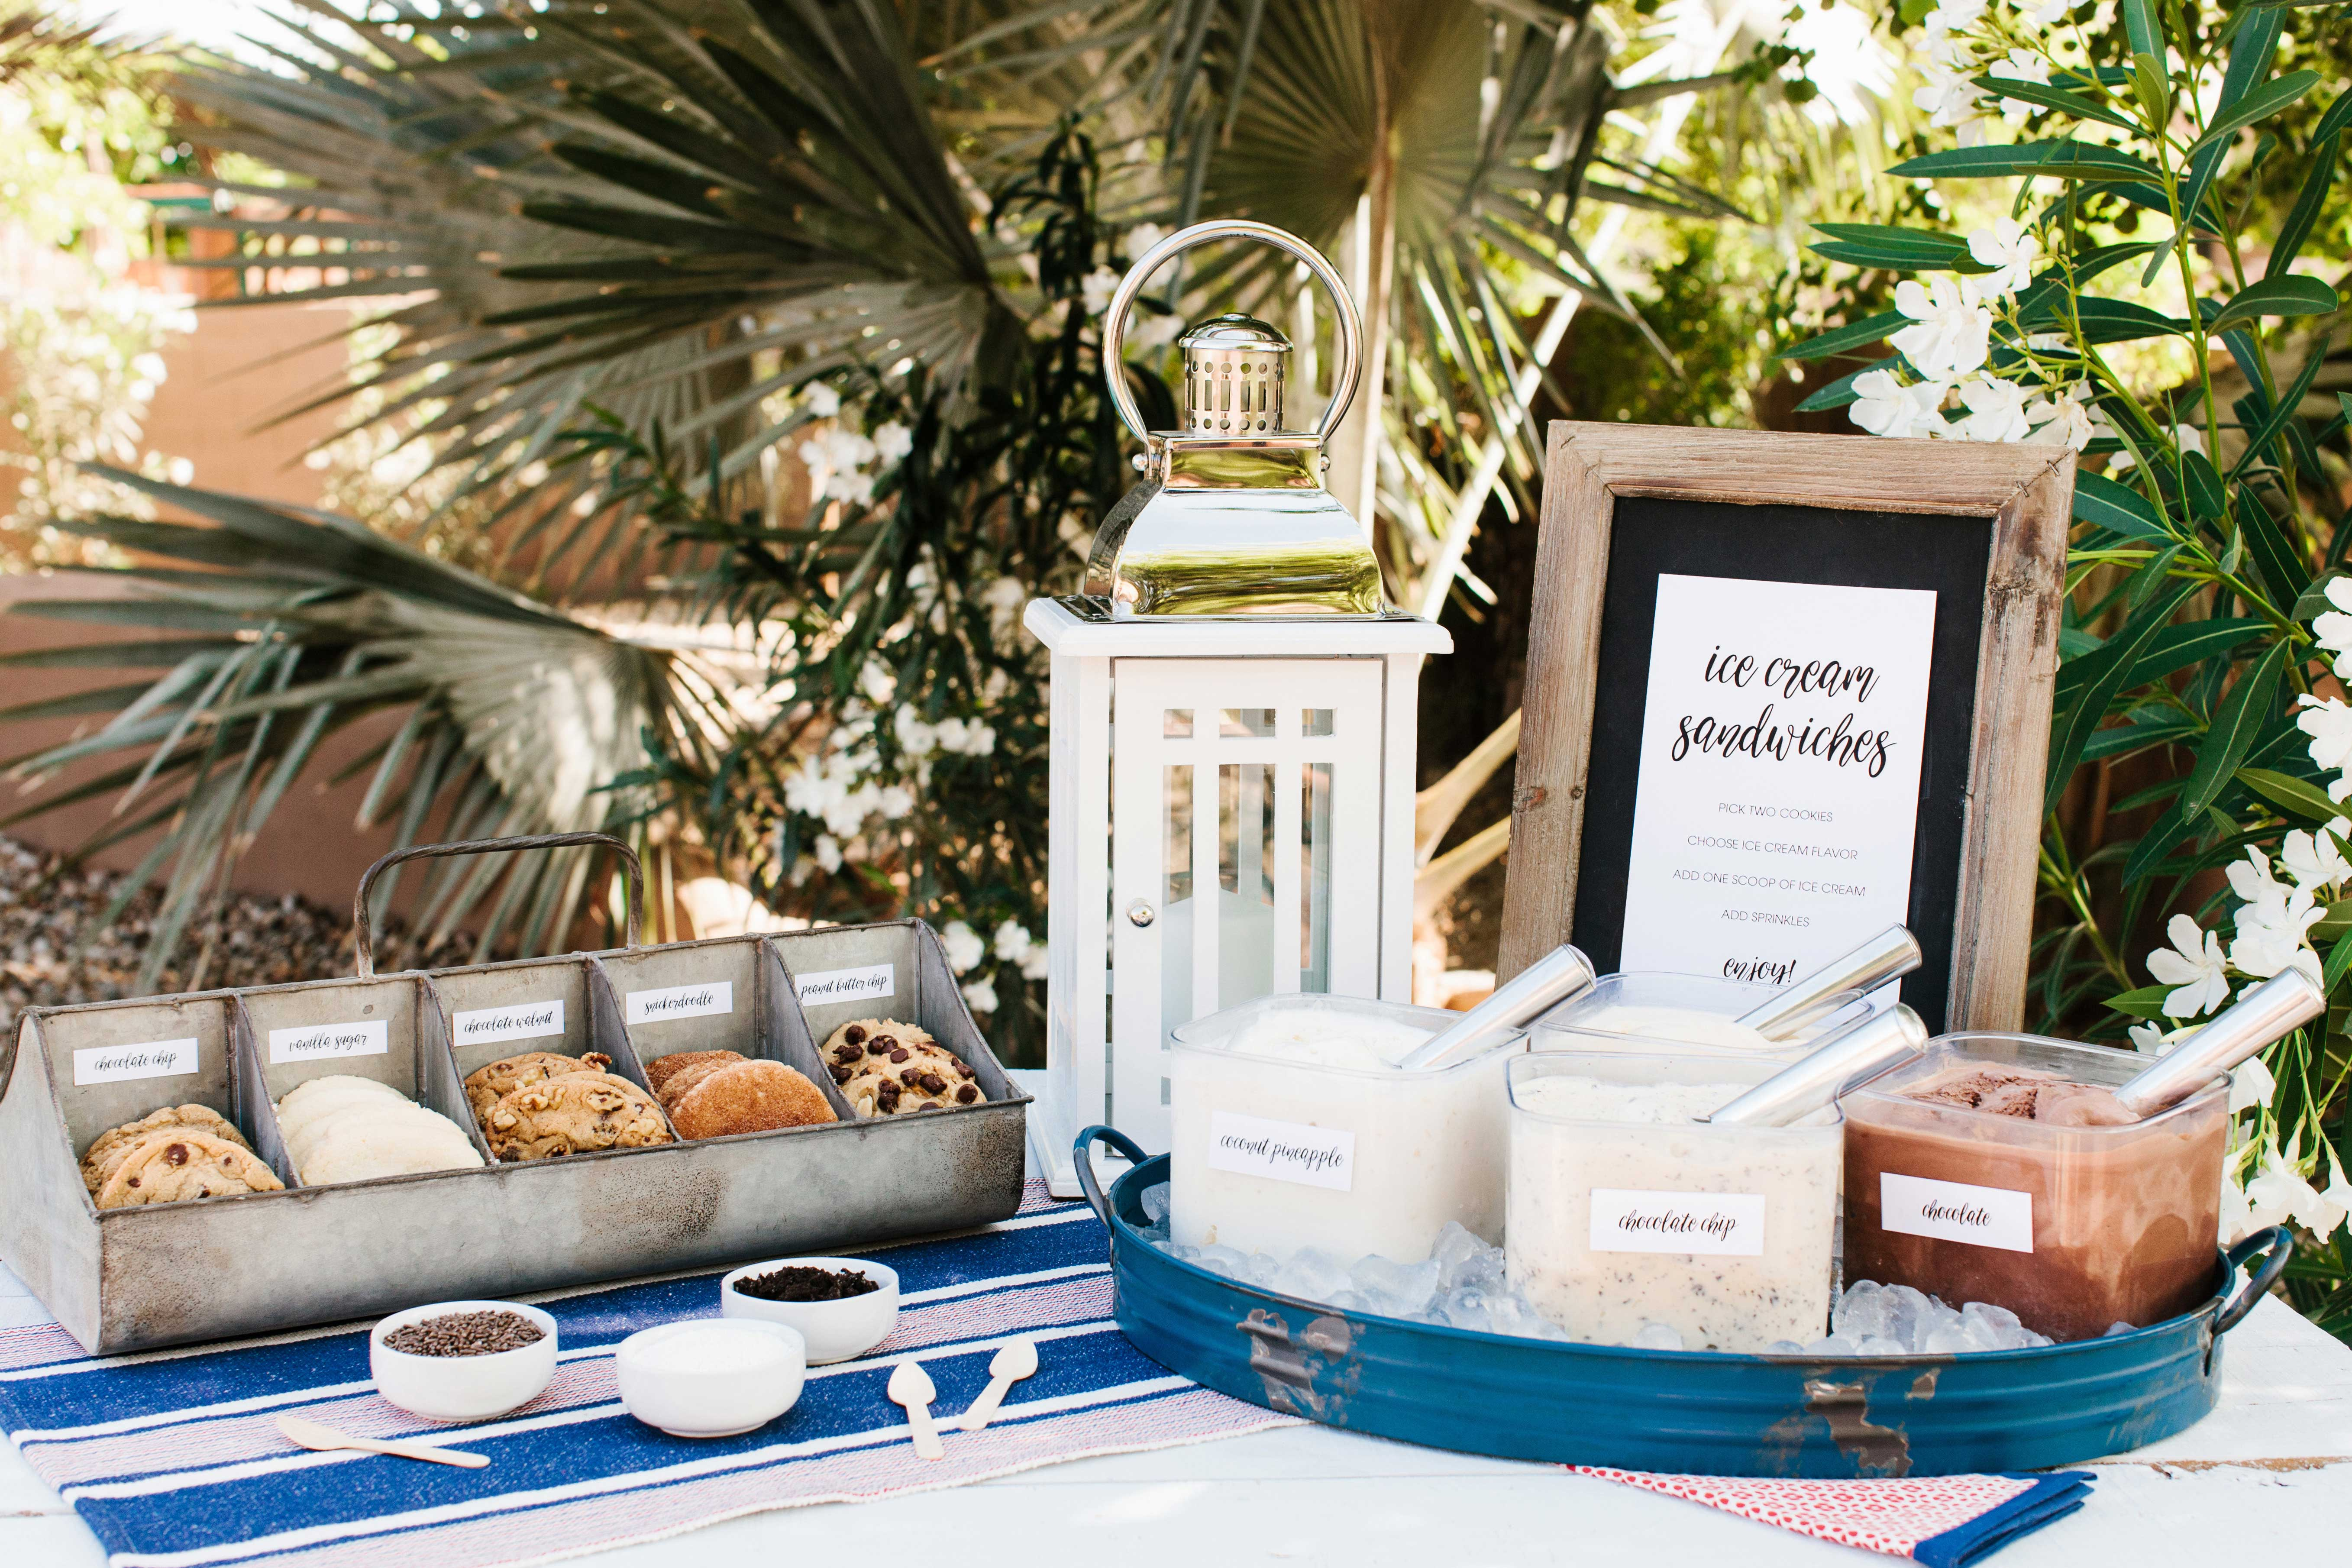 Cookie ice cream sandwich bar at outdoor event summer wedding ideas